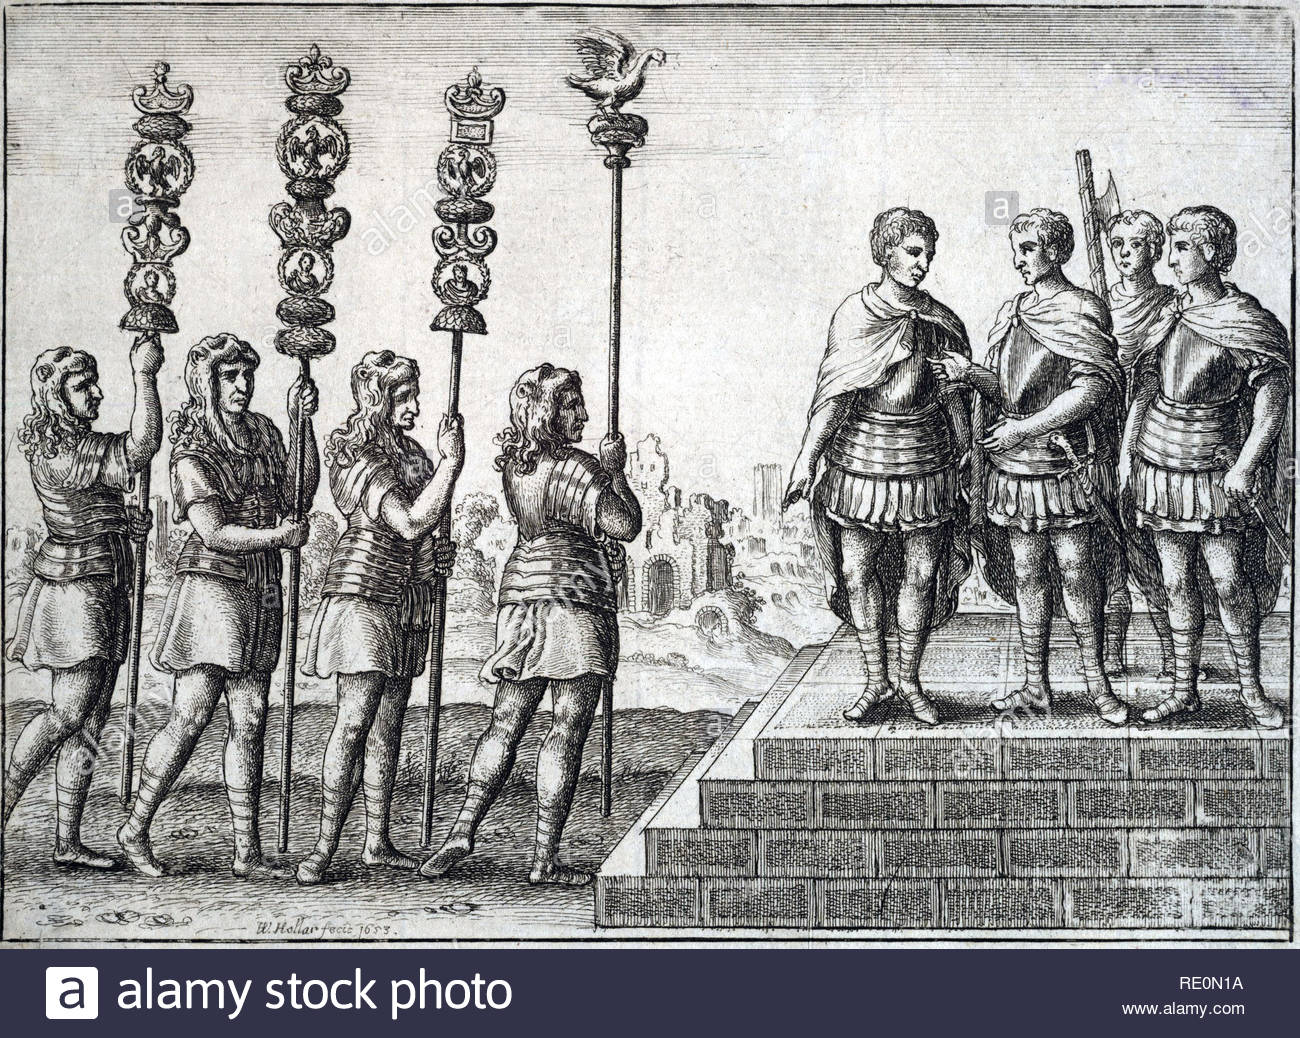 Roman soldiers, etching by Bohemian etcher Wenceslaus Hollar from 1653 - Stock Image